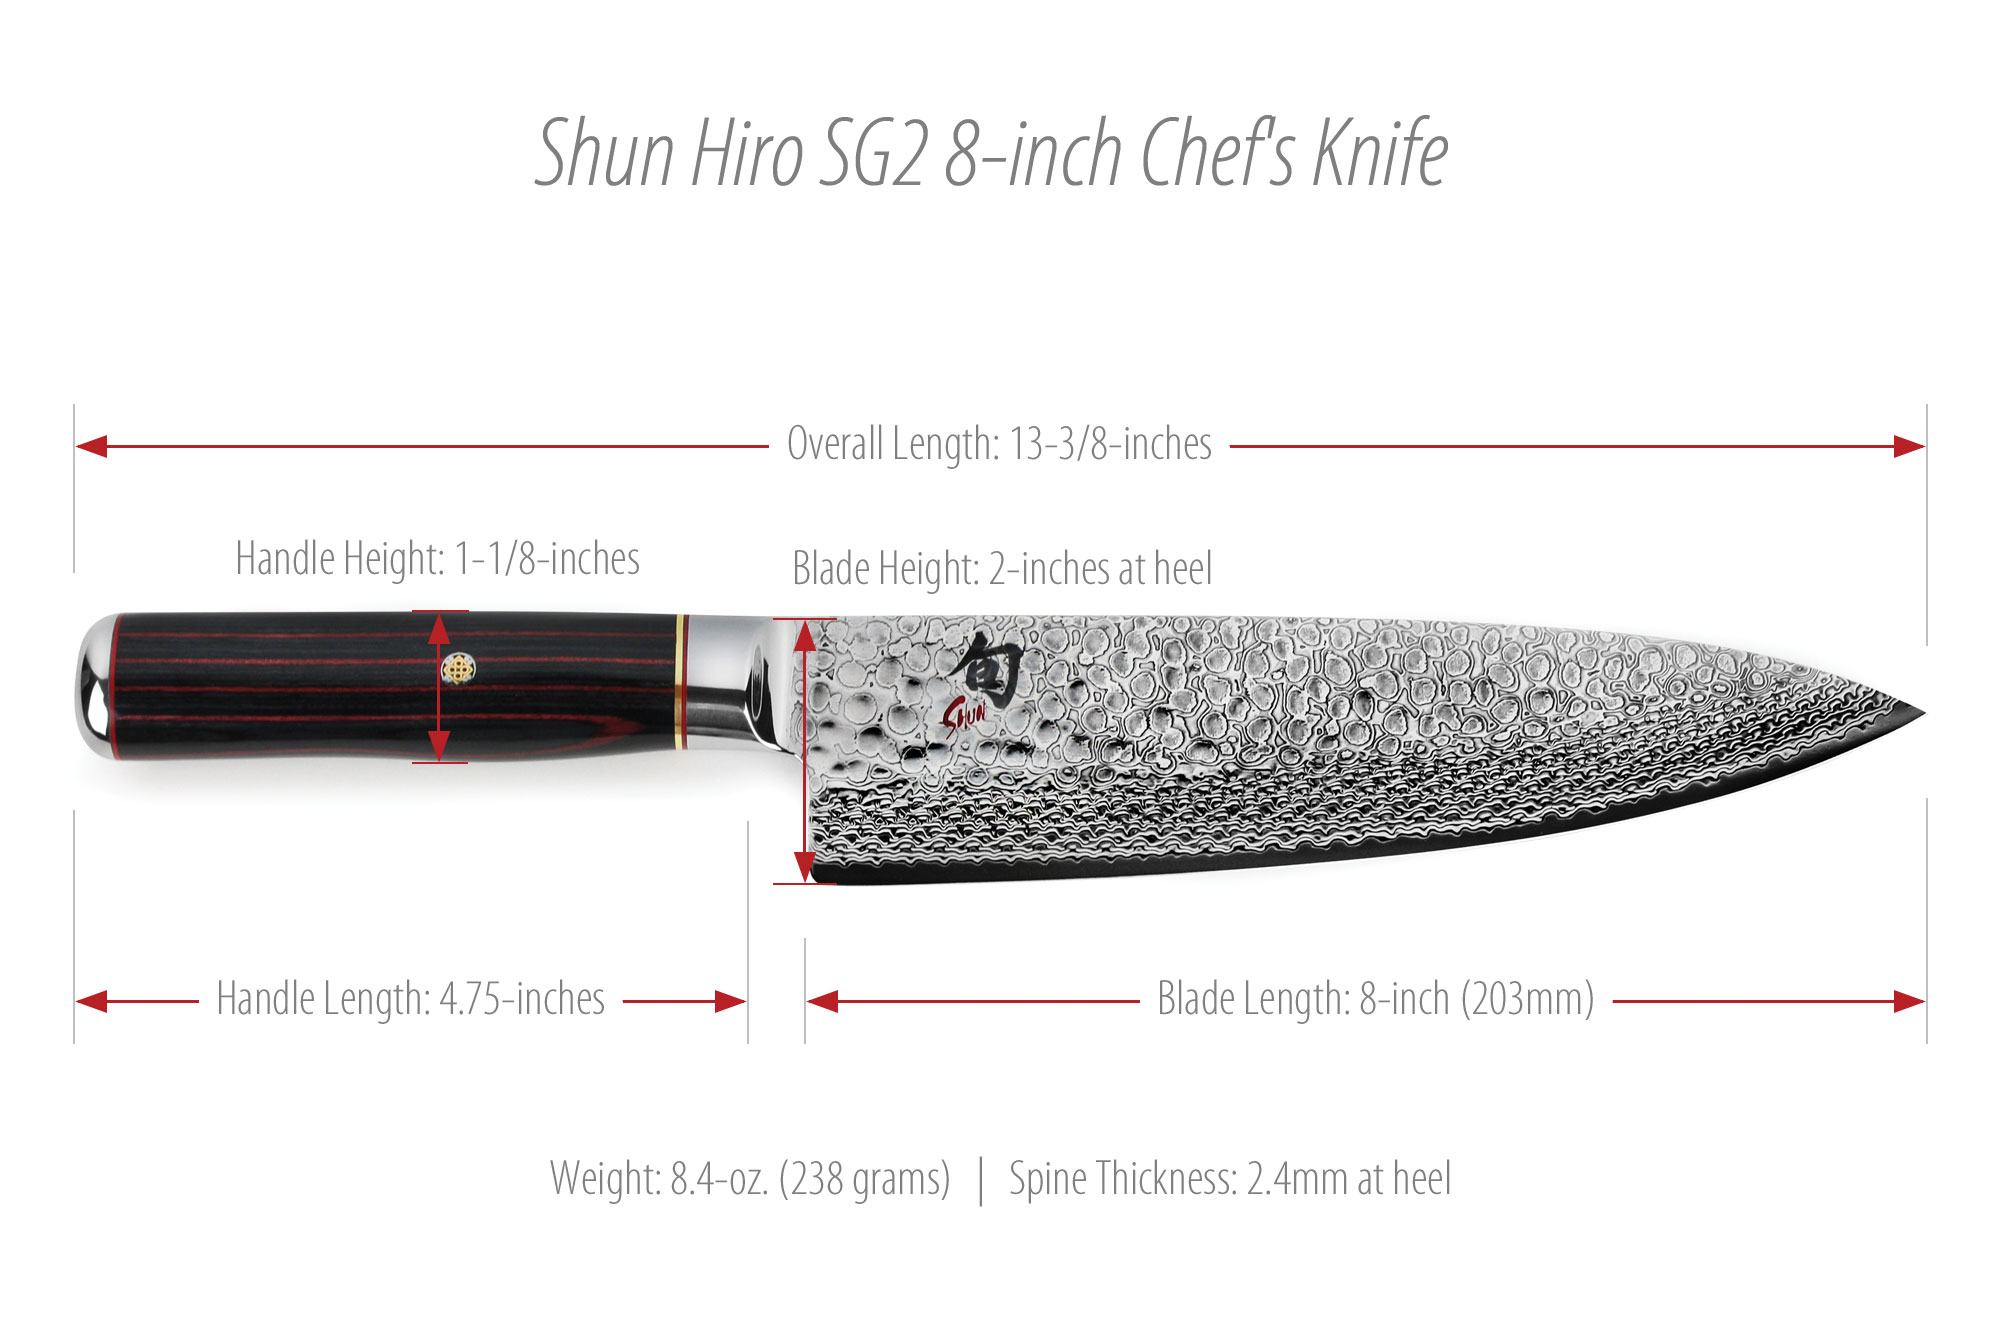 Shun Hiro Chef S Knives 8 Inch Sg2 Knife Cutlery And More